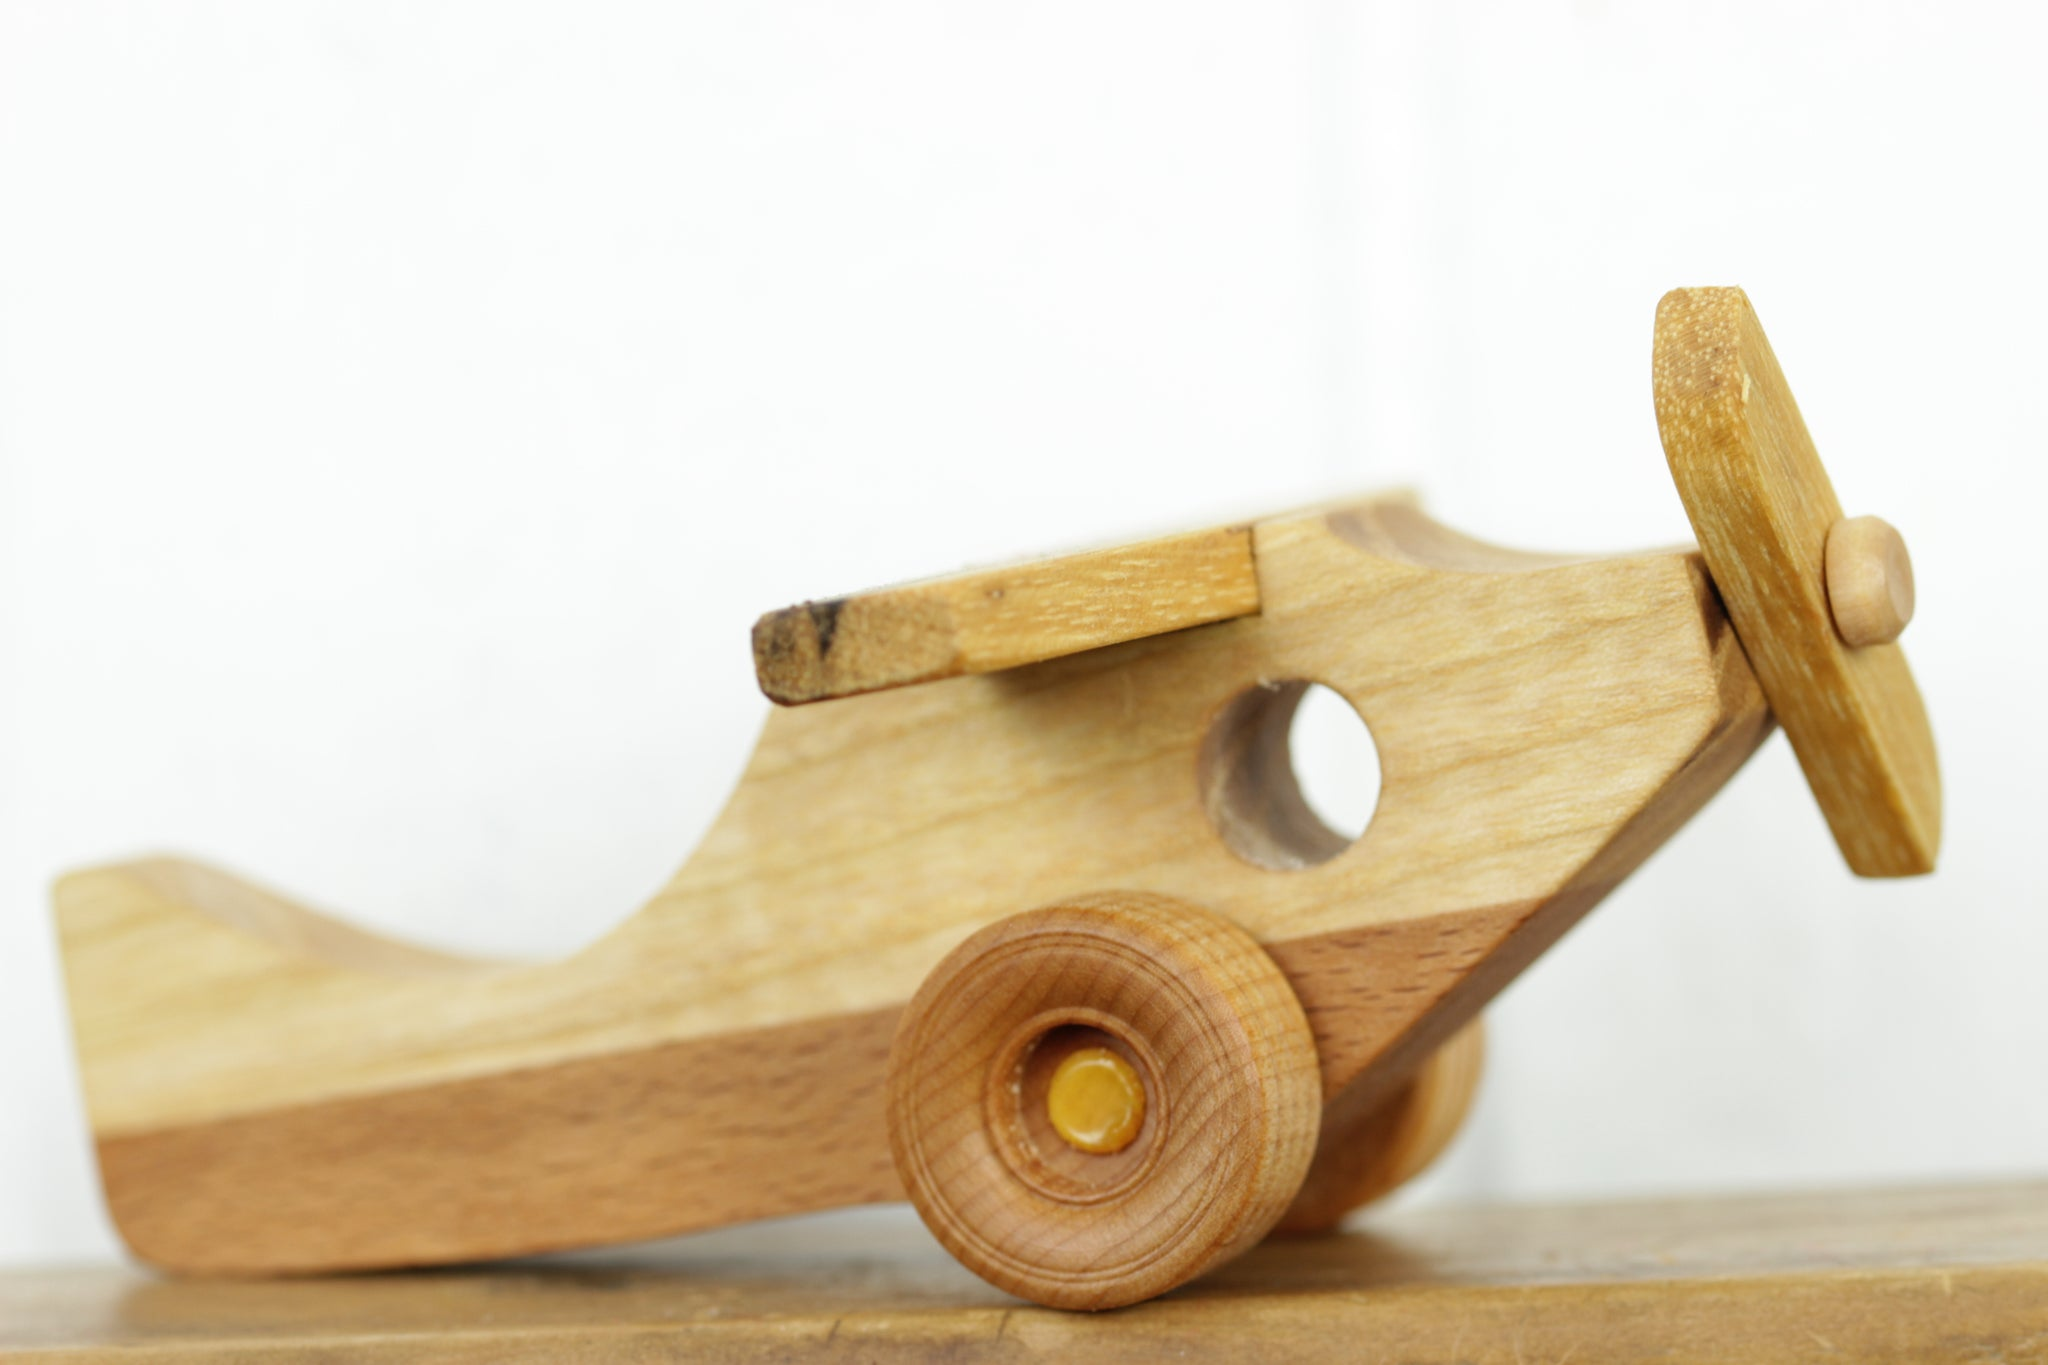 Wooden Plane, No Noise Toys